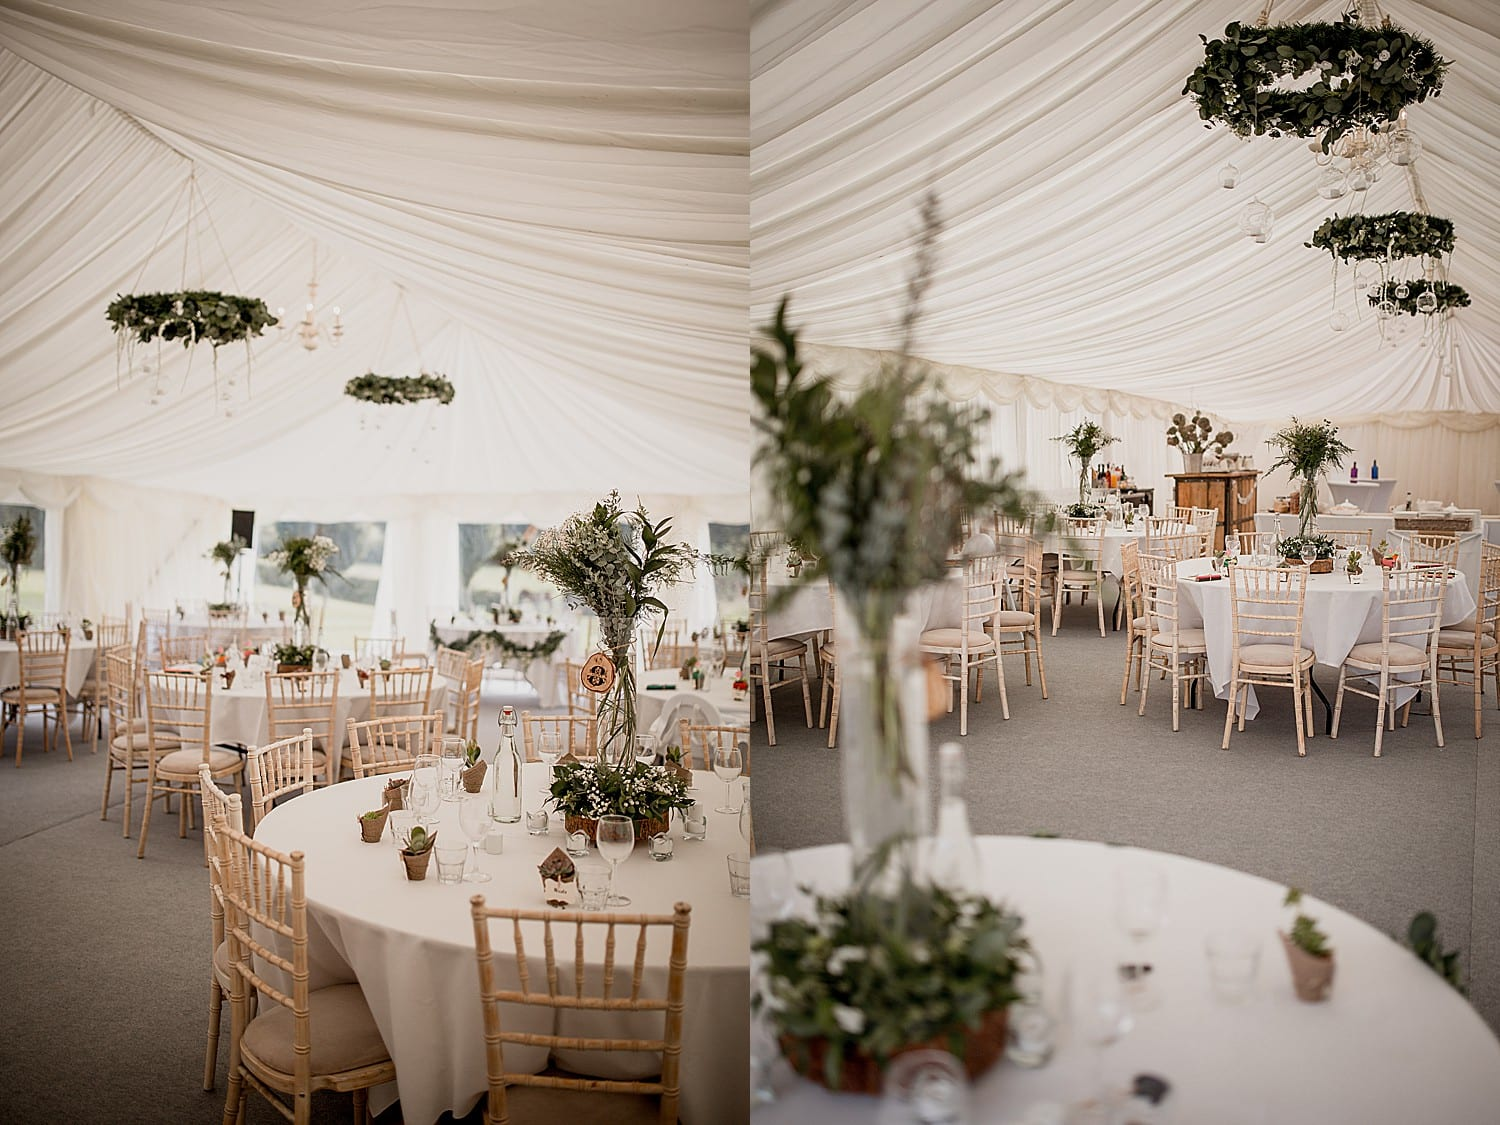 buddileigh farm marquee